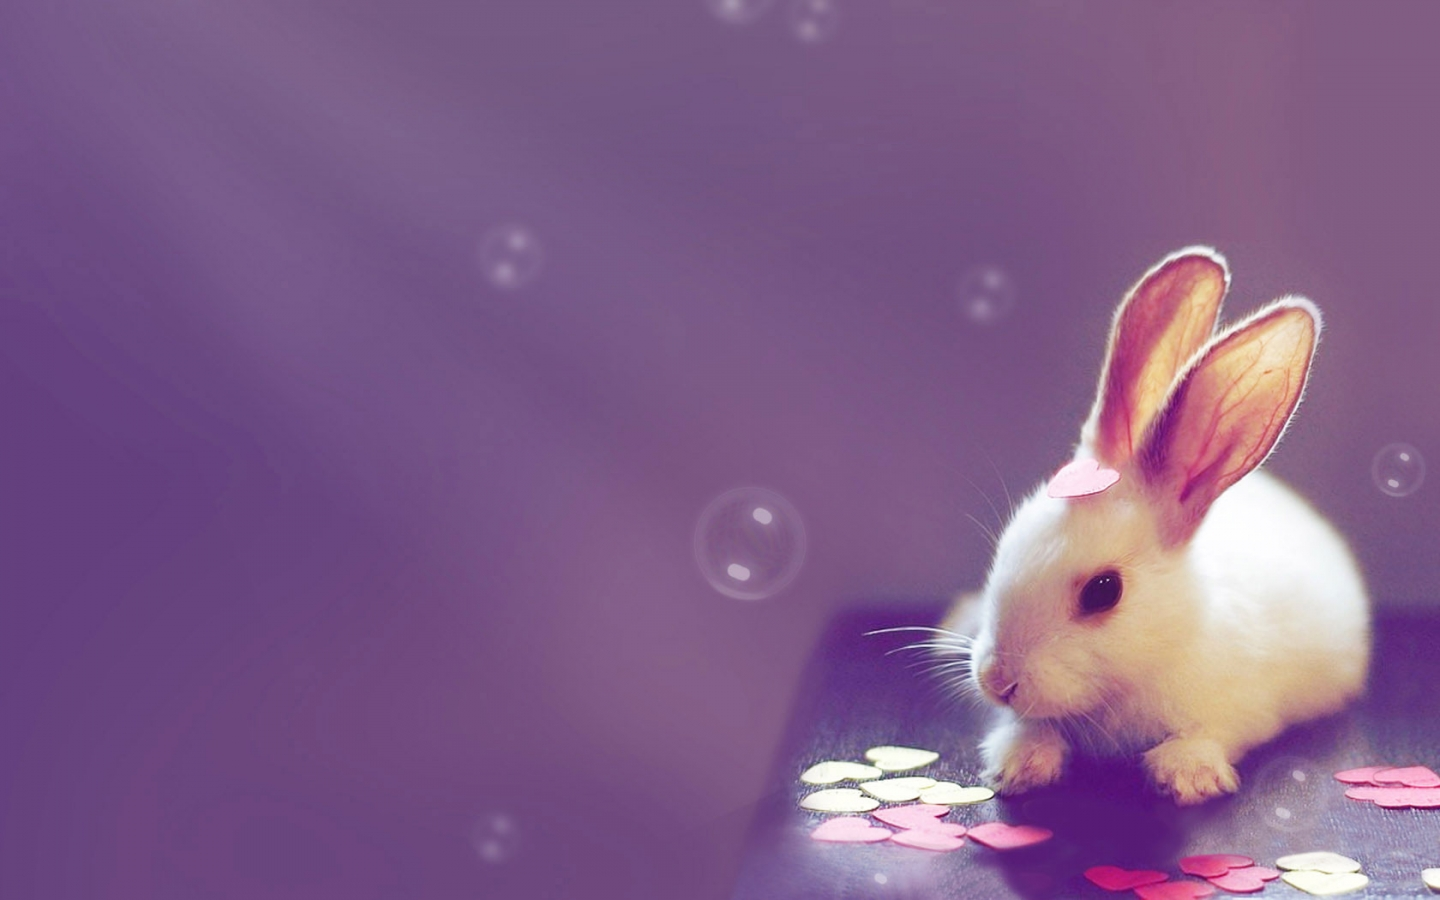 cute wallpapers 15723 1440x900 px